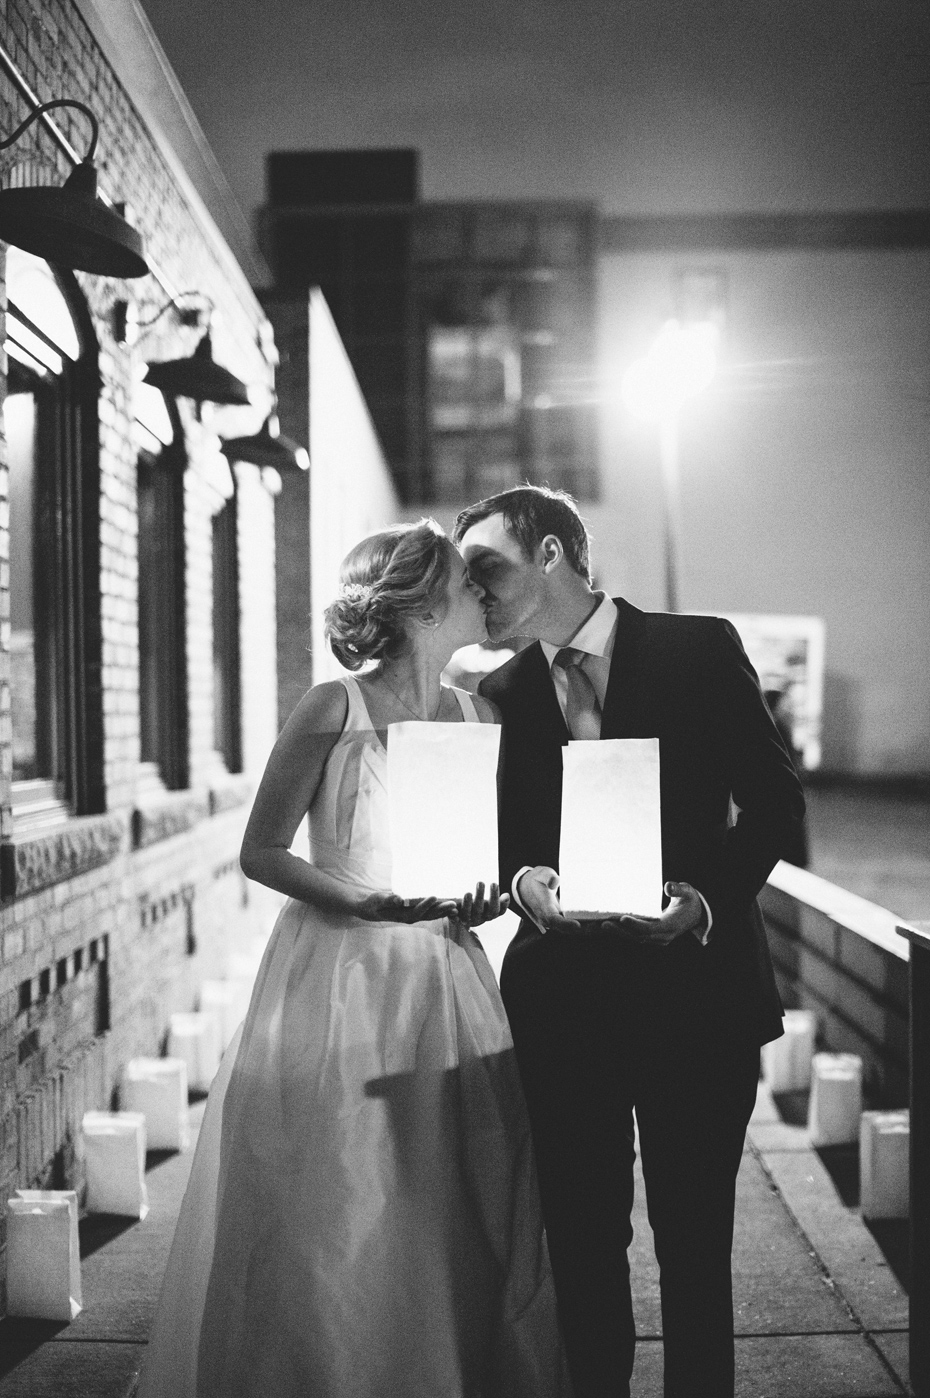 The bride and groom share one last kiss during a wedding reception at Zingerman's Events on Fourth, in Ann Arbor, by Wedding Photographer Heather Jowett